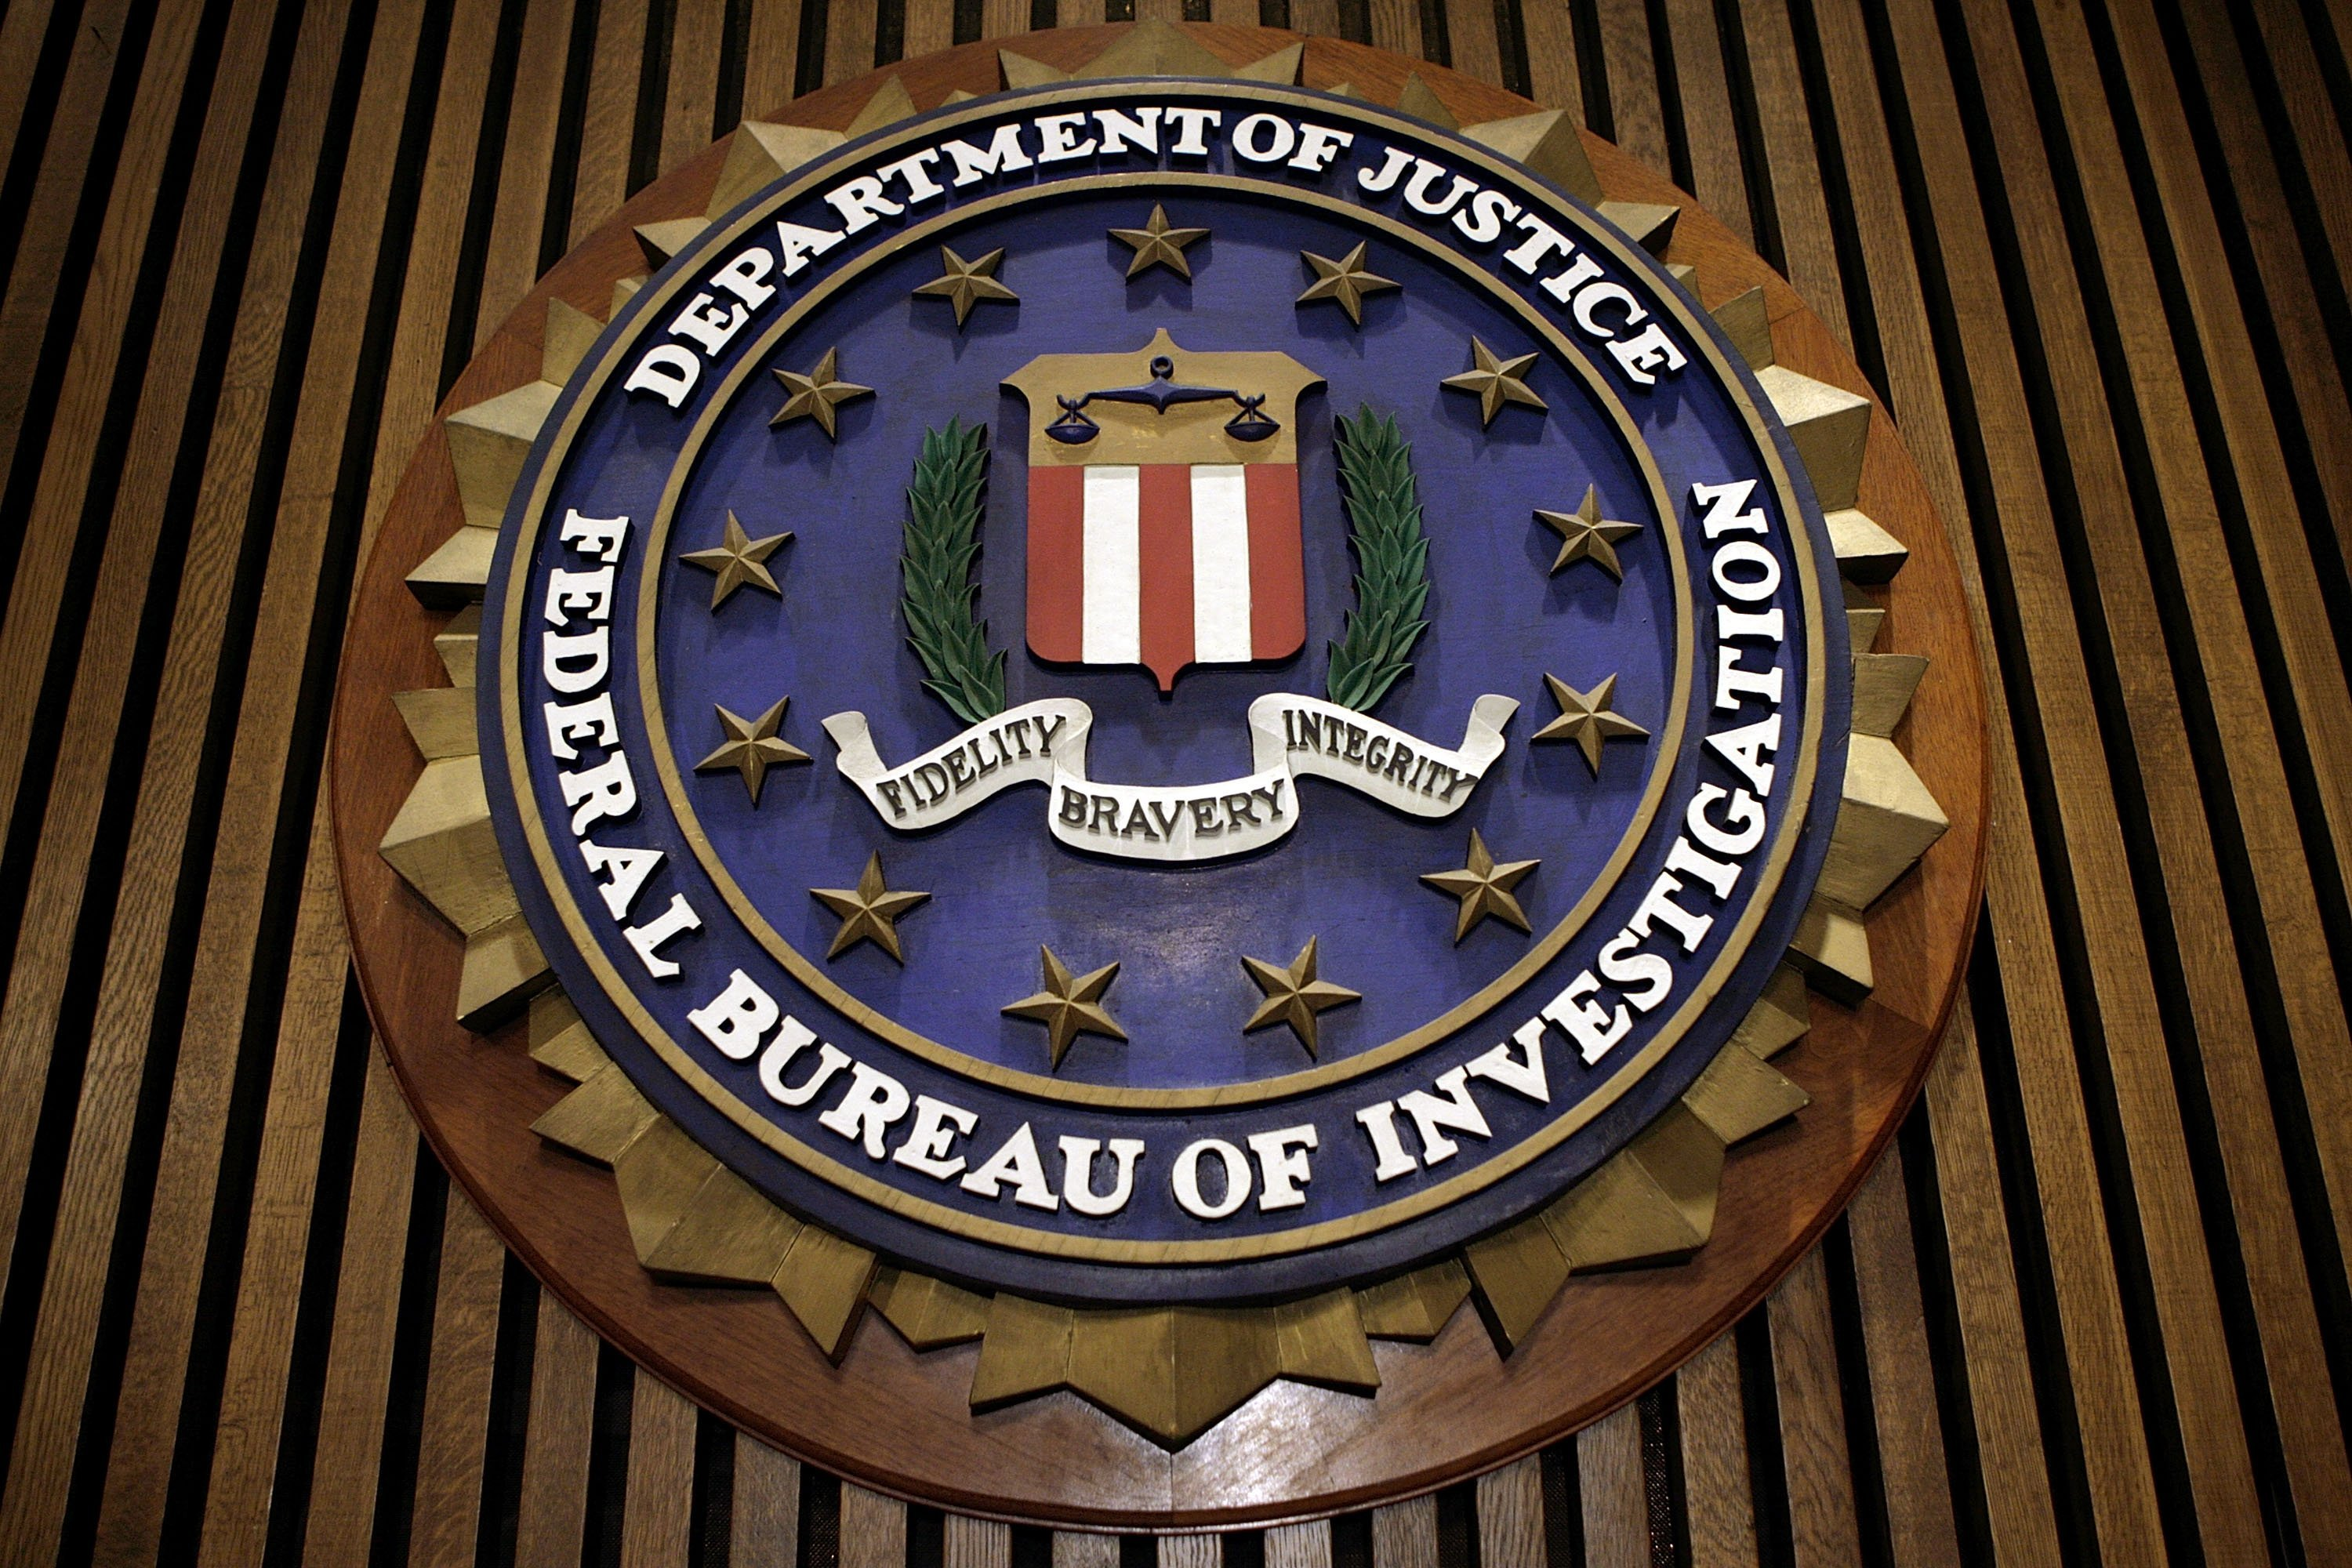 DOJ watchdog finds security risks in FBI handling of confidential sources